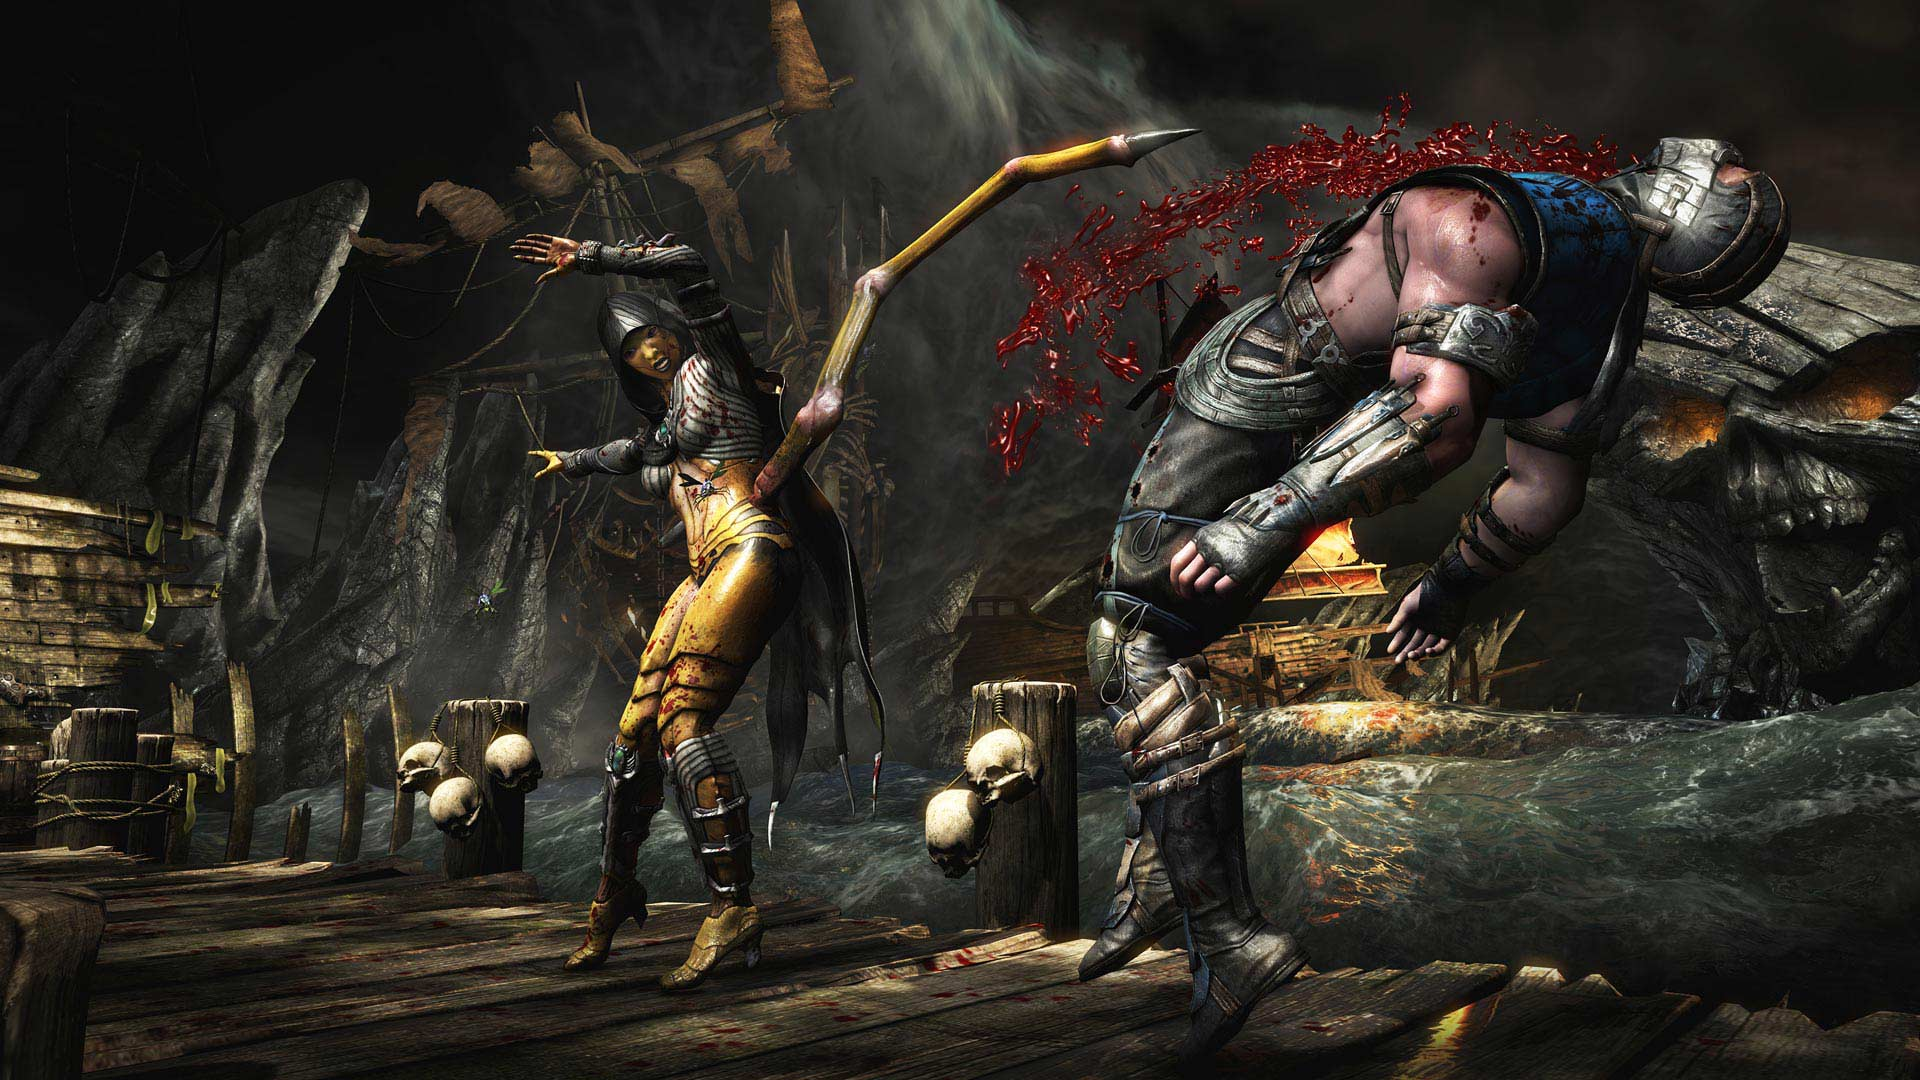 Mortal Kombat X's big PC patch rolled out today and killed players' save data